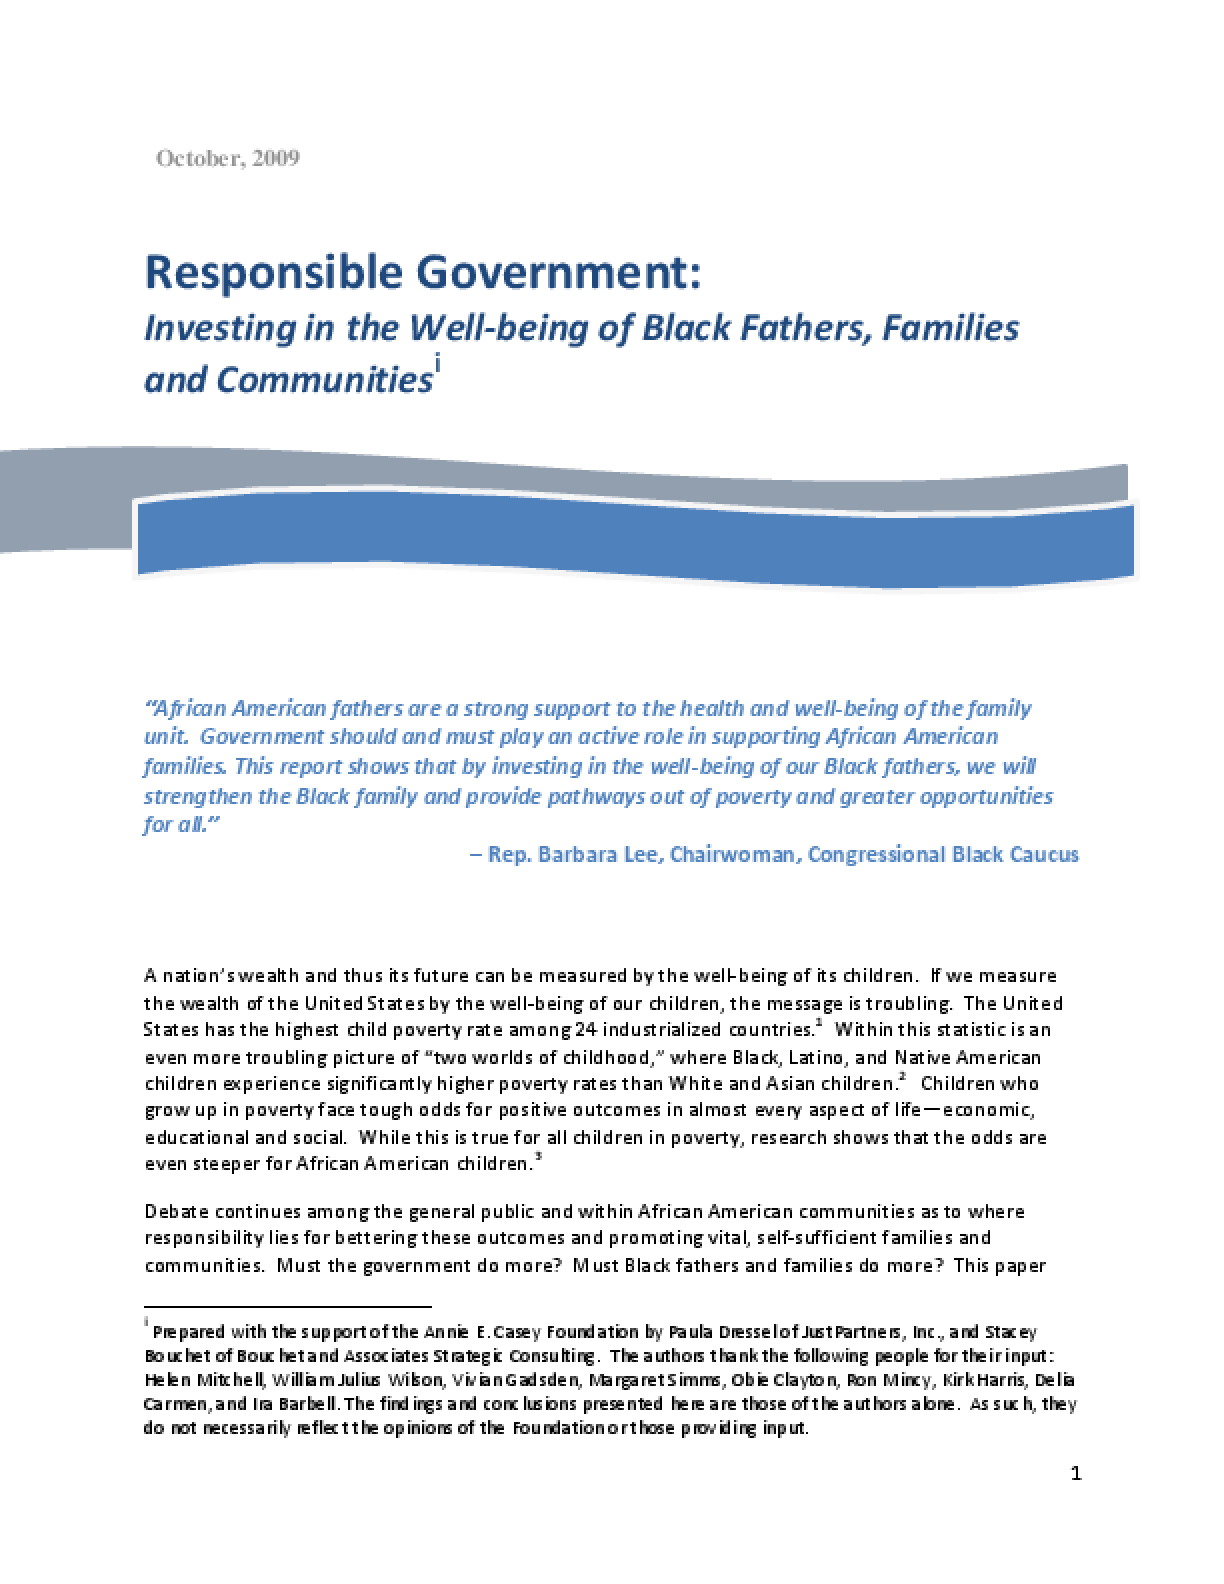 Responsible Government: Investing in the Well-Being of Black Fathers, Families and Communities